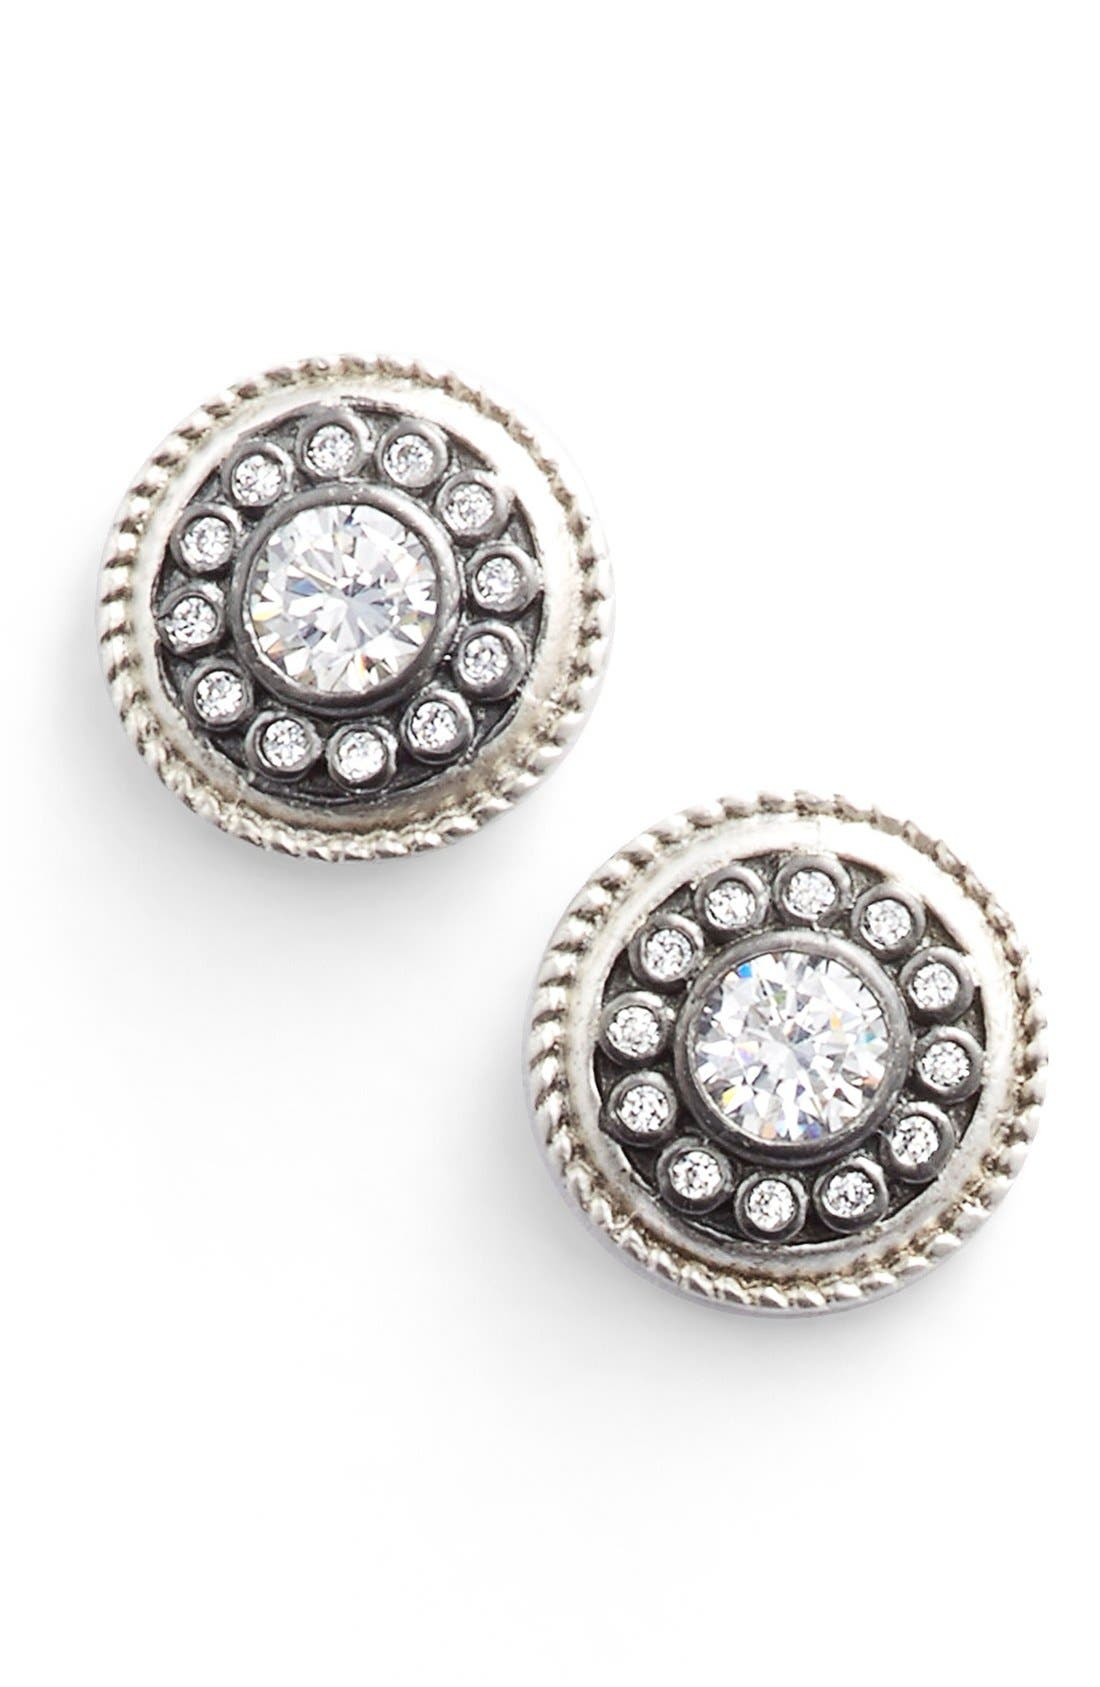 'Nautical Button' Stud Earrings,                         Main,                         color, SILVER/ GUNMETAL/ CLEAR